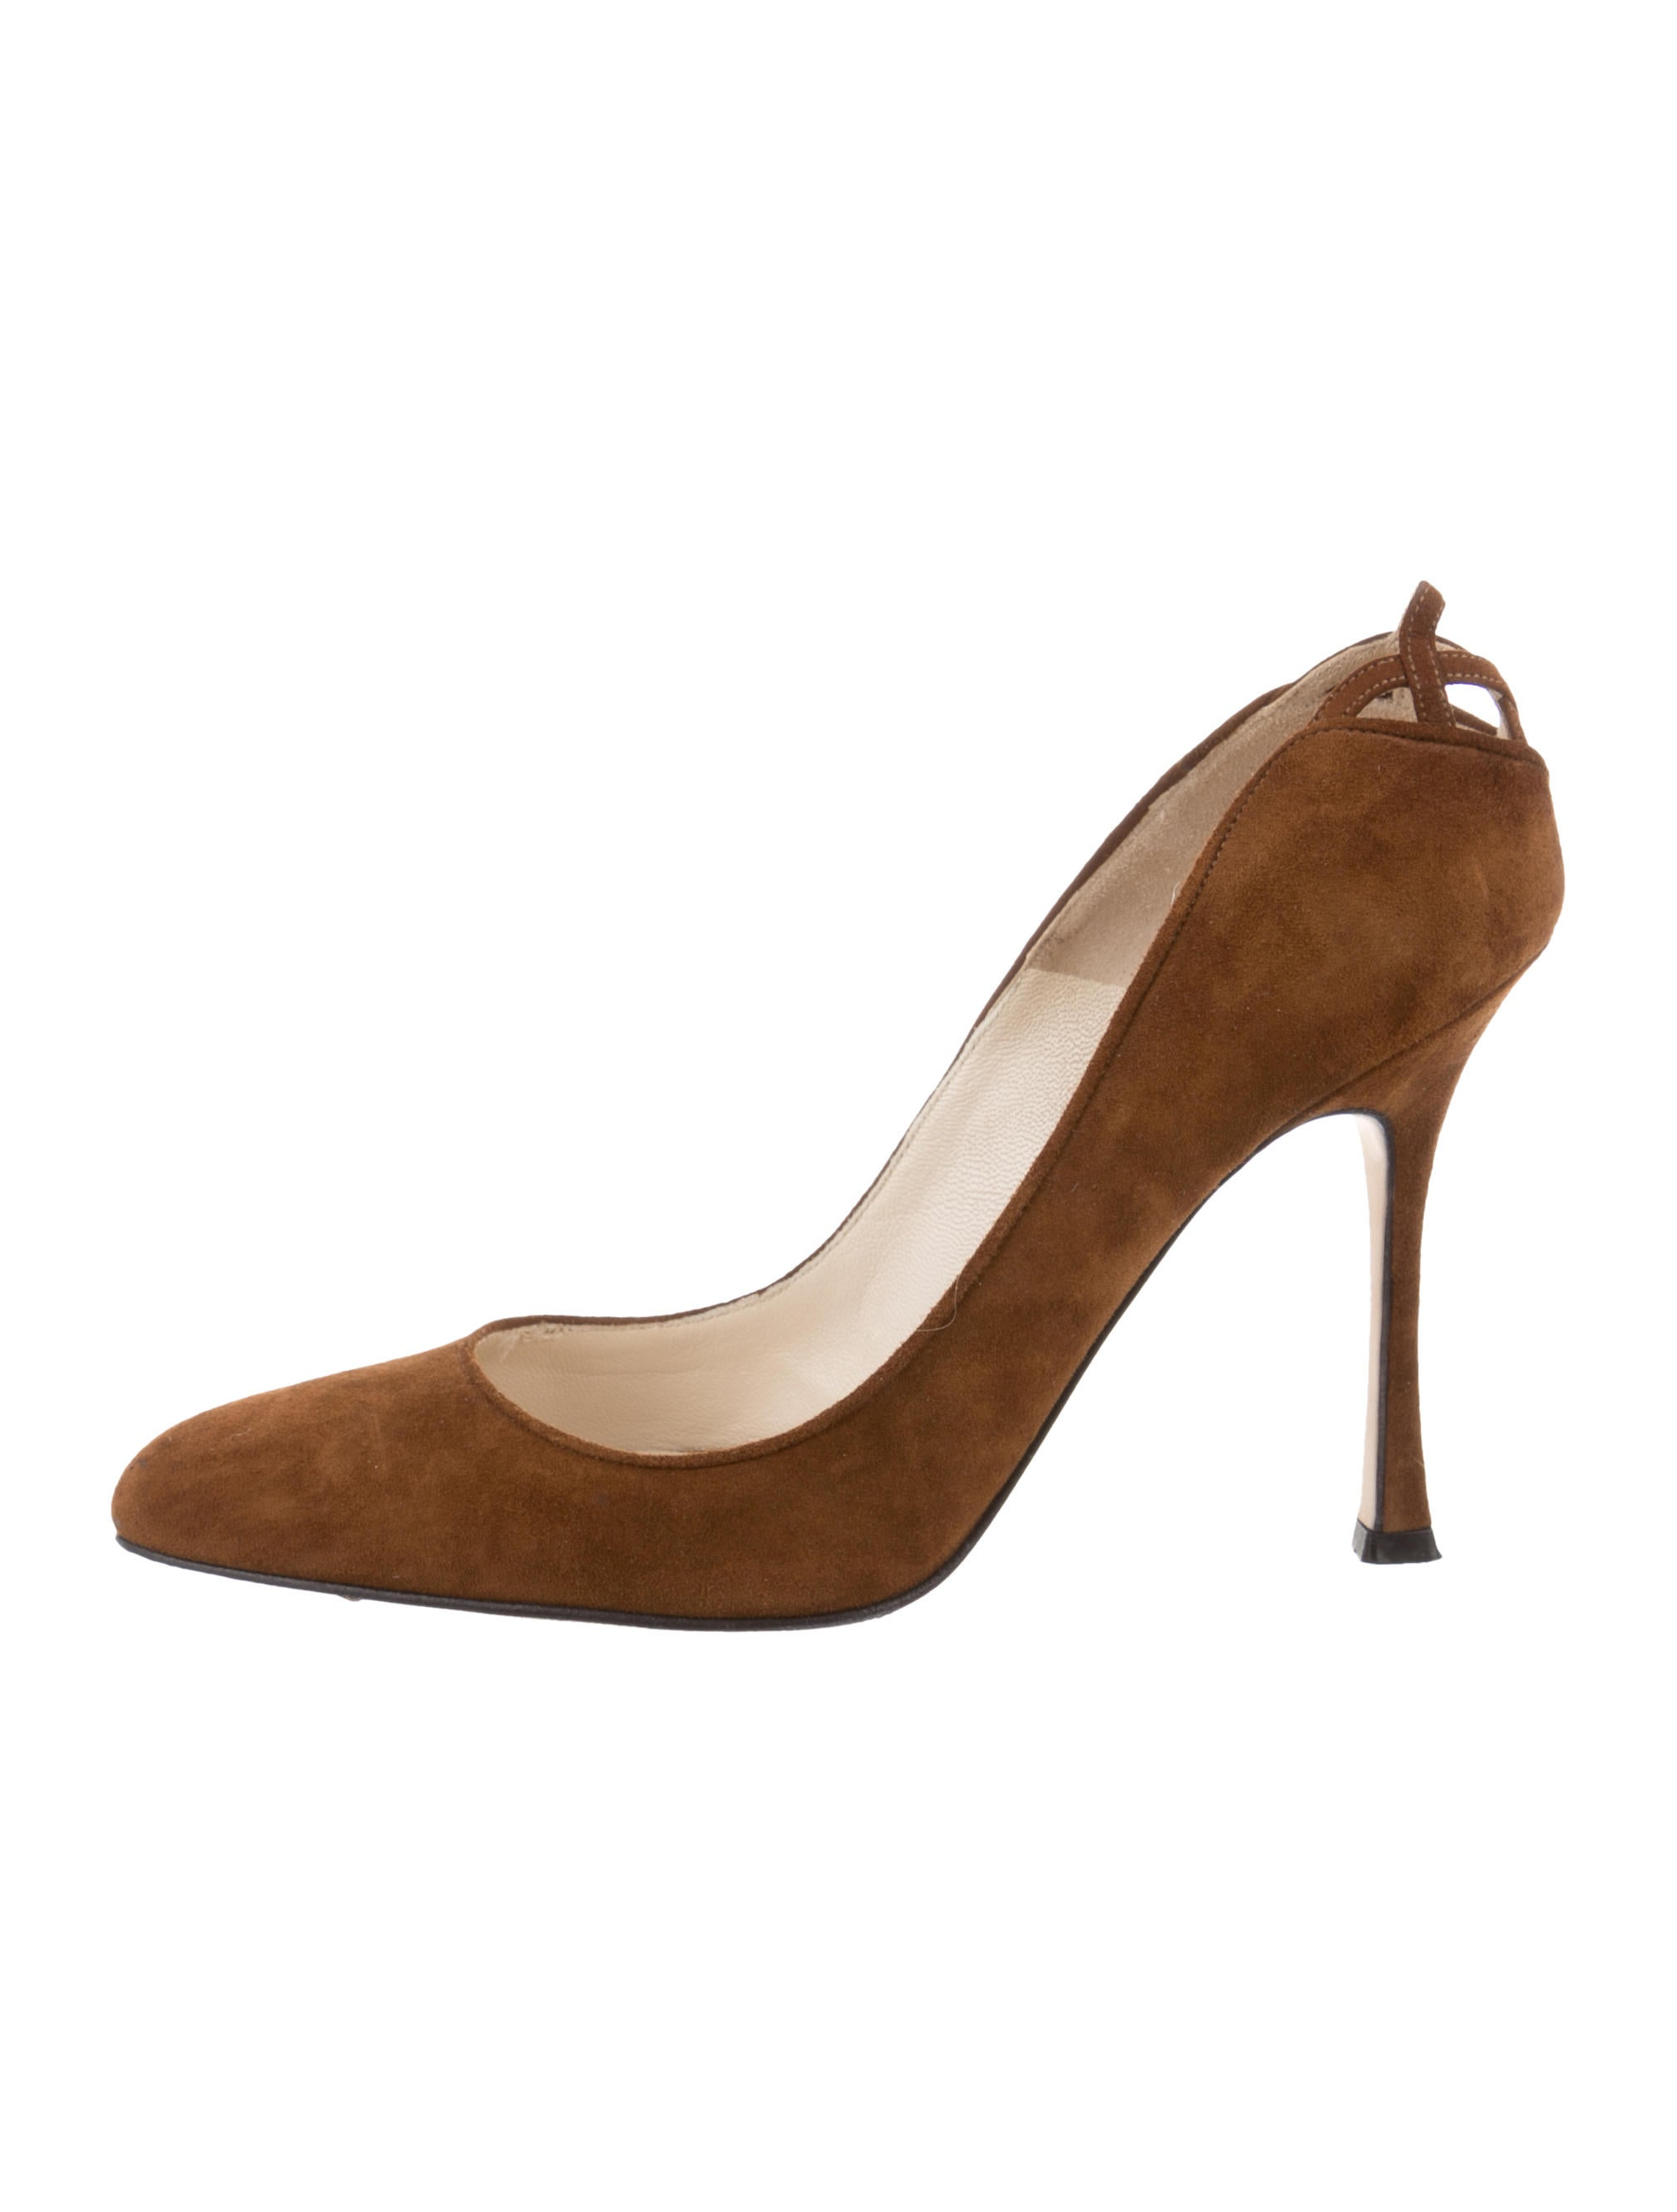 Brian Atwood Suede Semi Pointed-Toe Pumps outlet shop for jhJw2S9